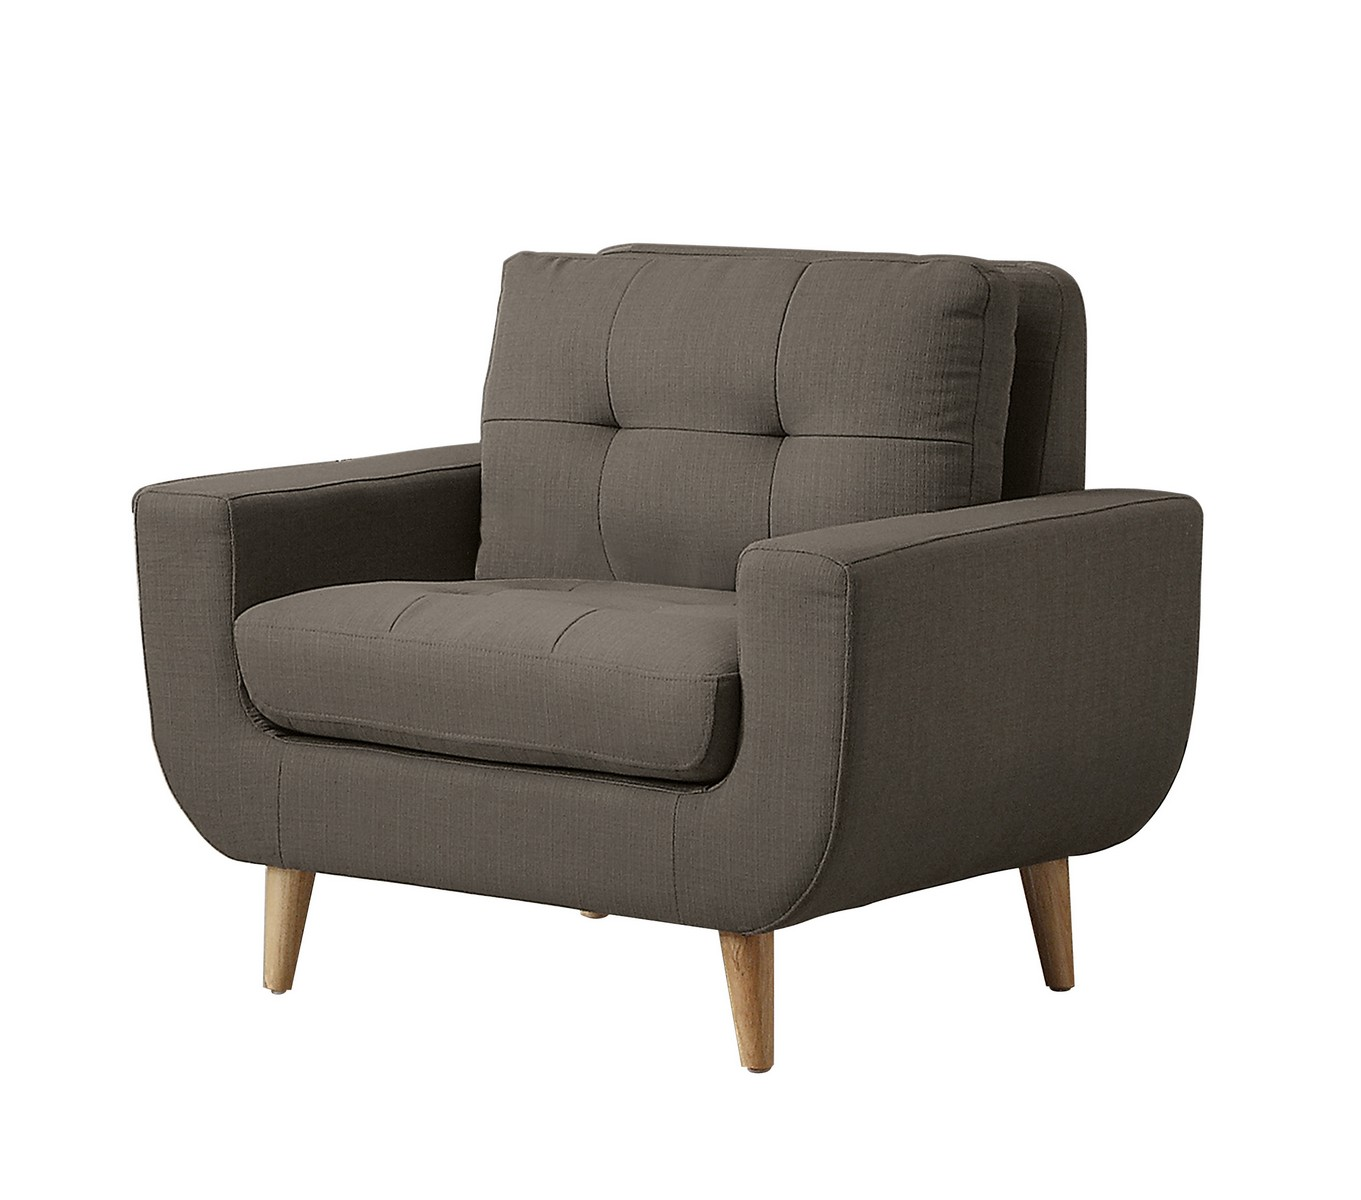 Homelegance Deryn Chair - Polyester - Grey